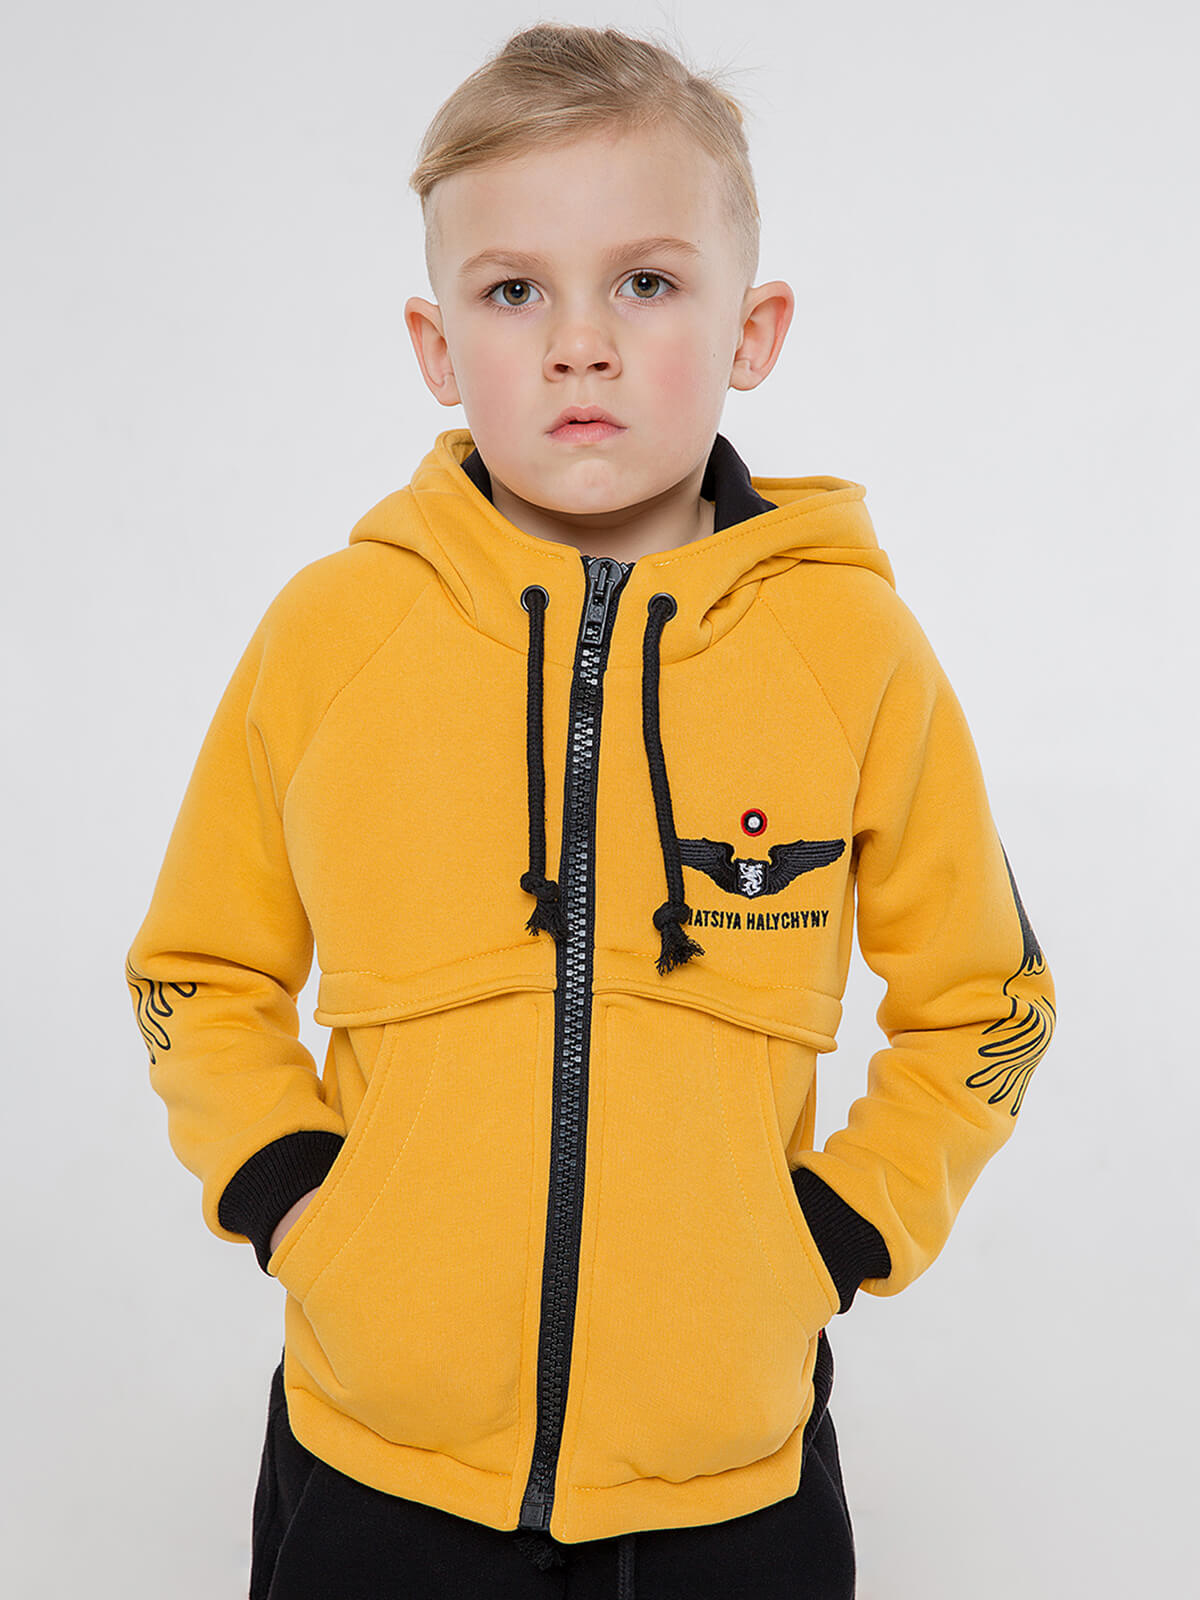 Kids Hoodie Stork. Color yellow. Hoodie: unisex, well suited for both boys and girls.